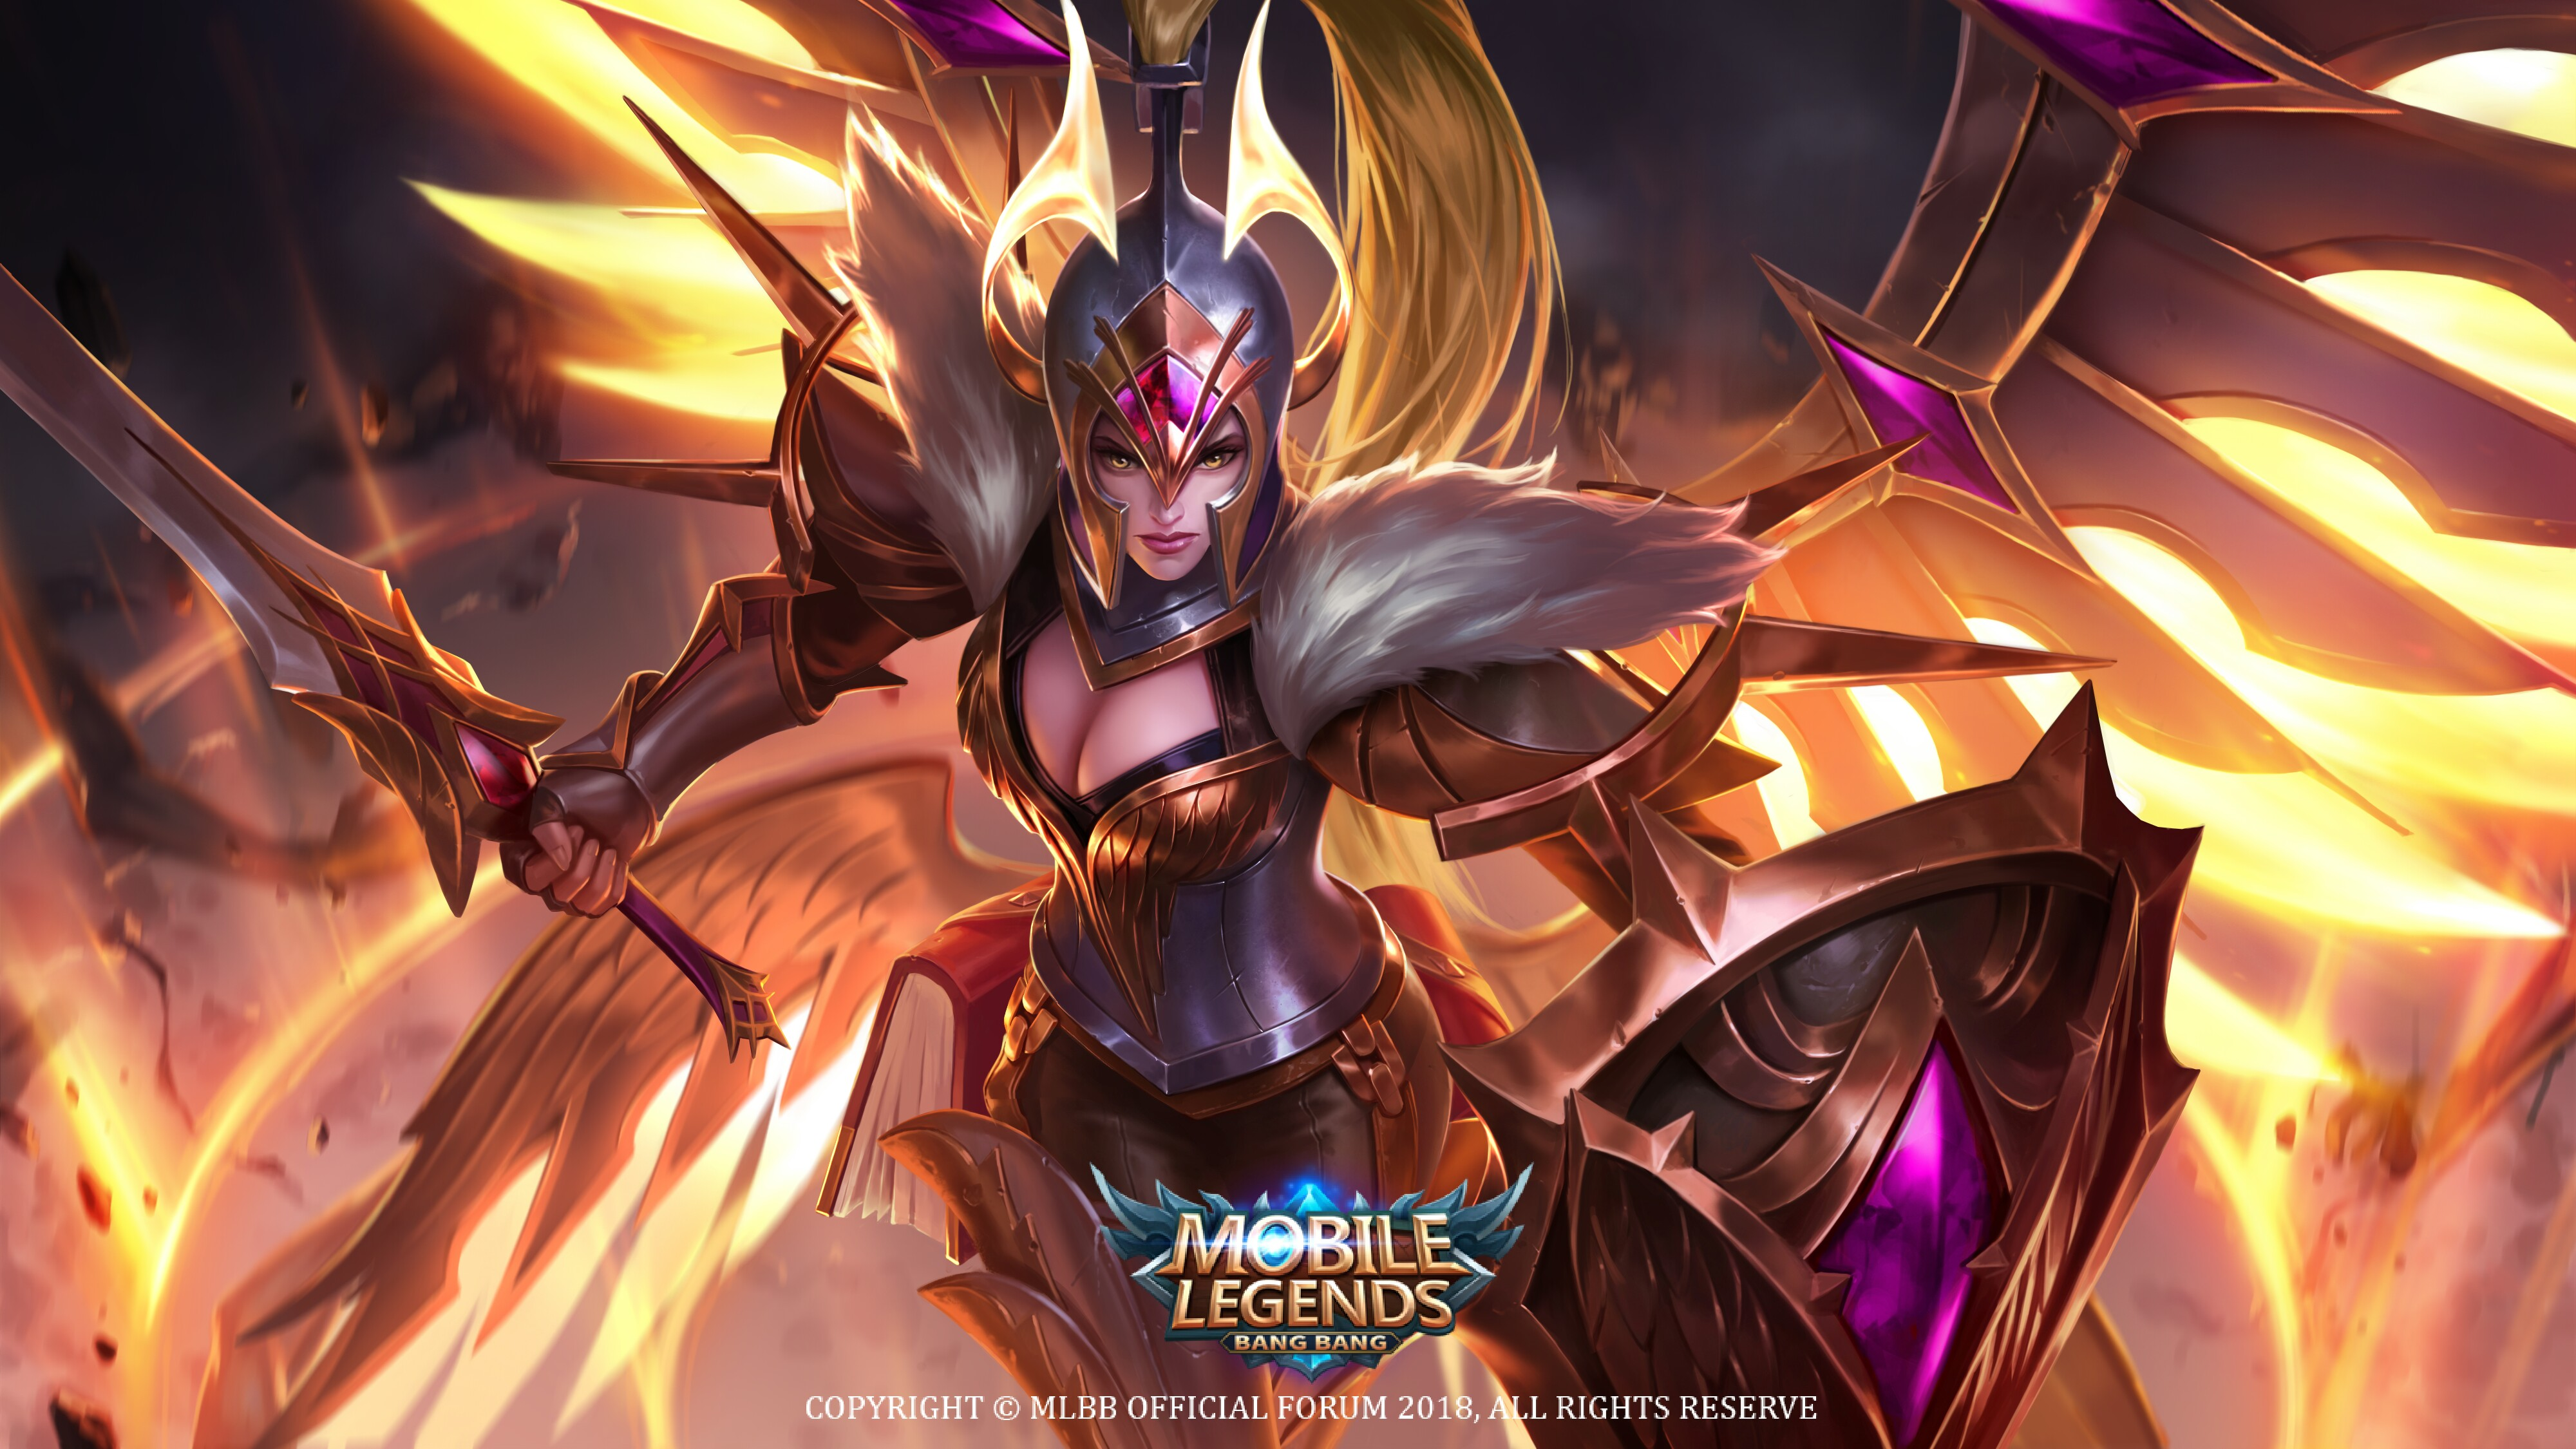 120 Best Mobile Legends Wallpapers Ever Download for Mobile 4000x2250